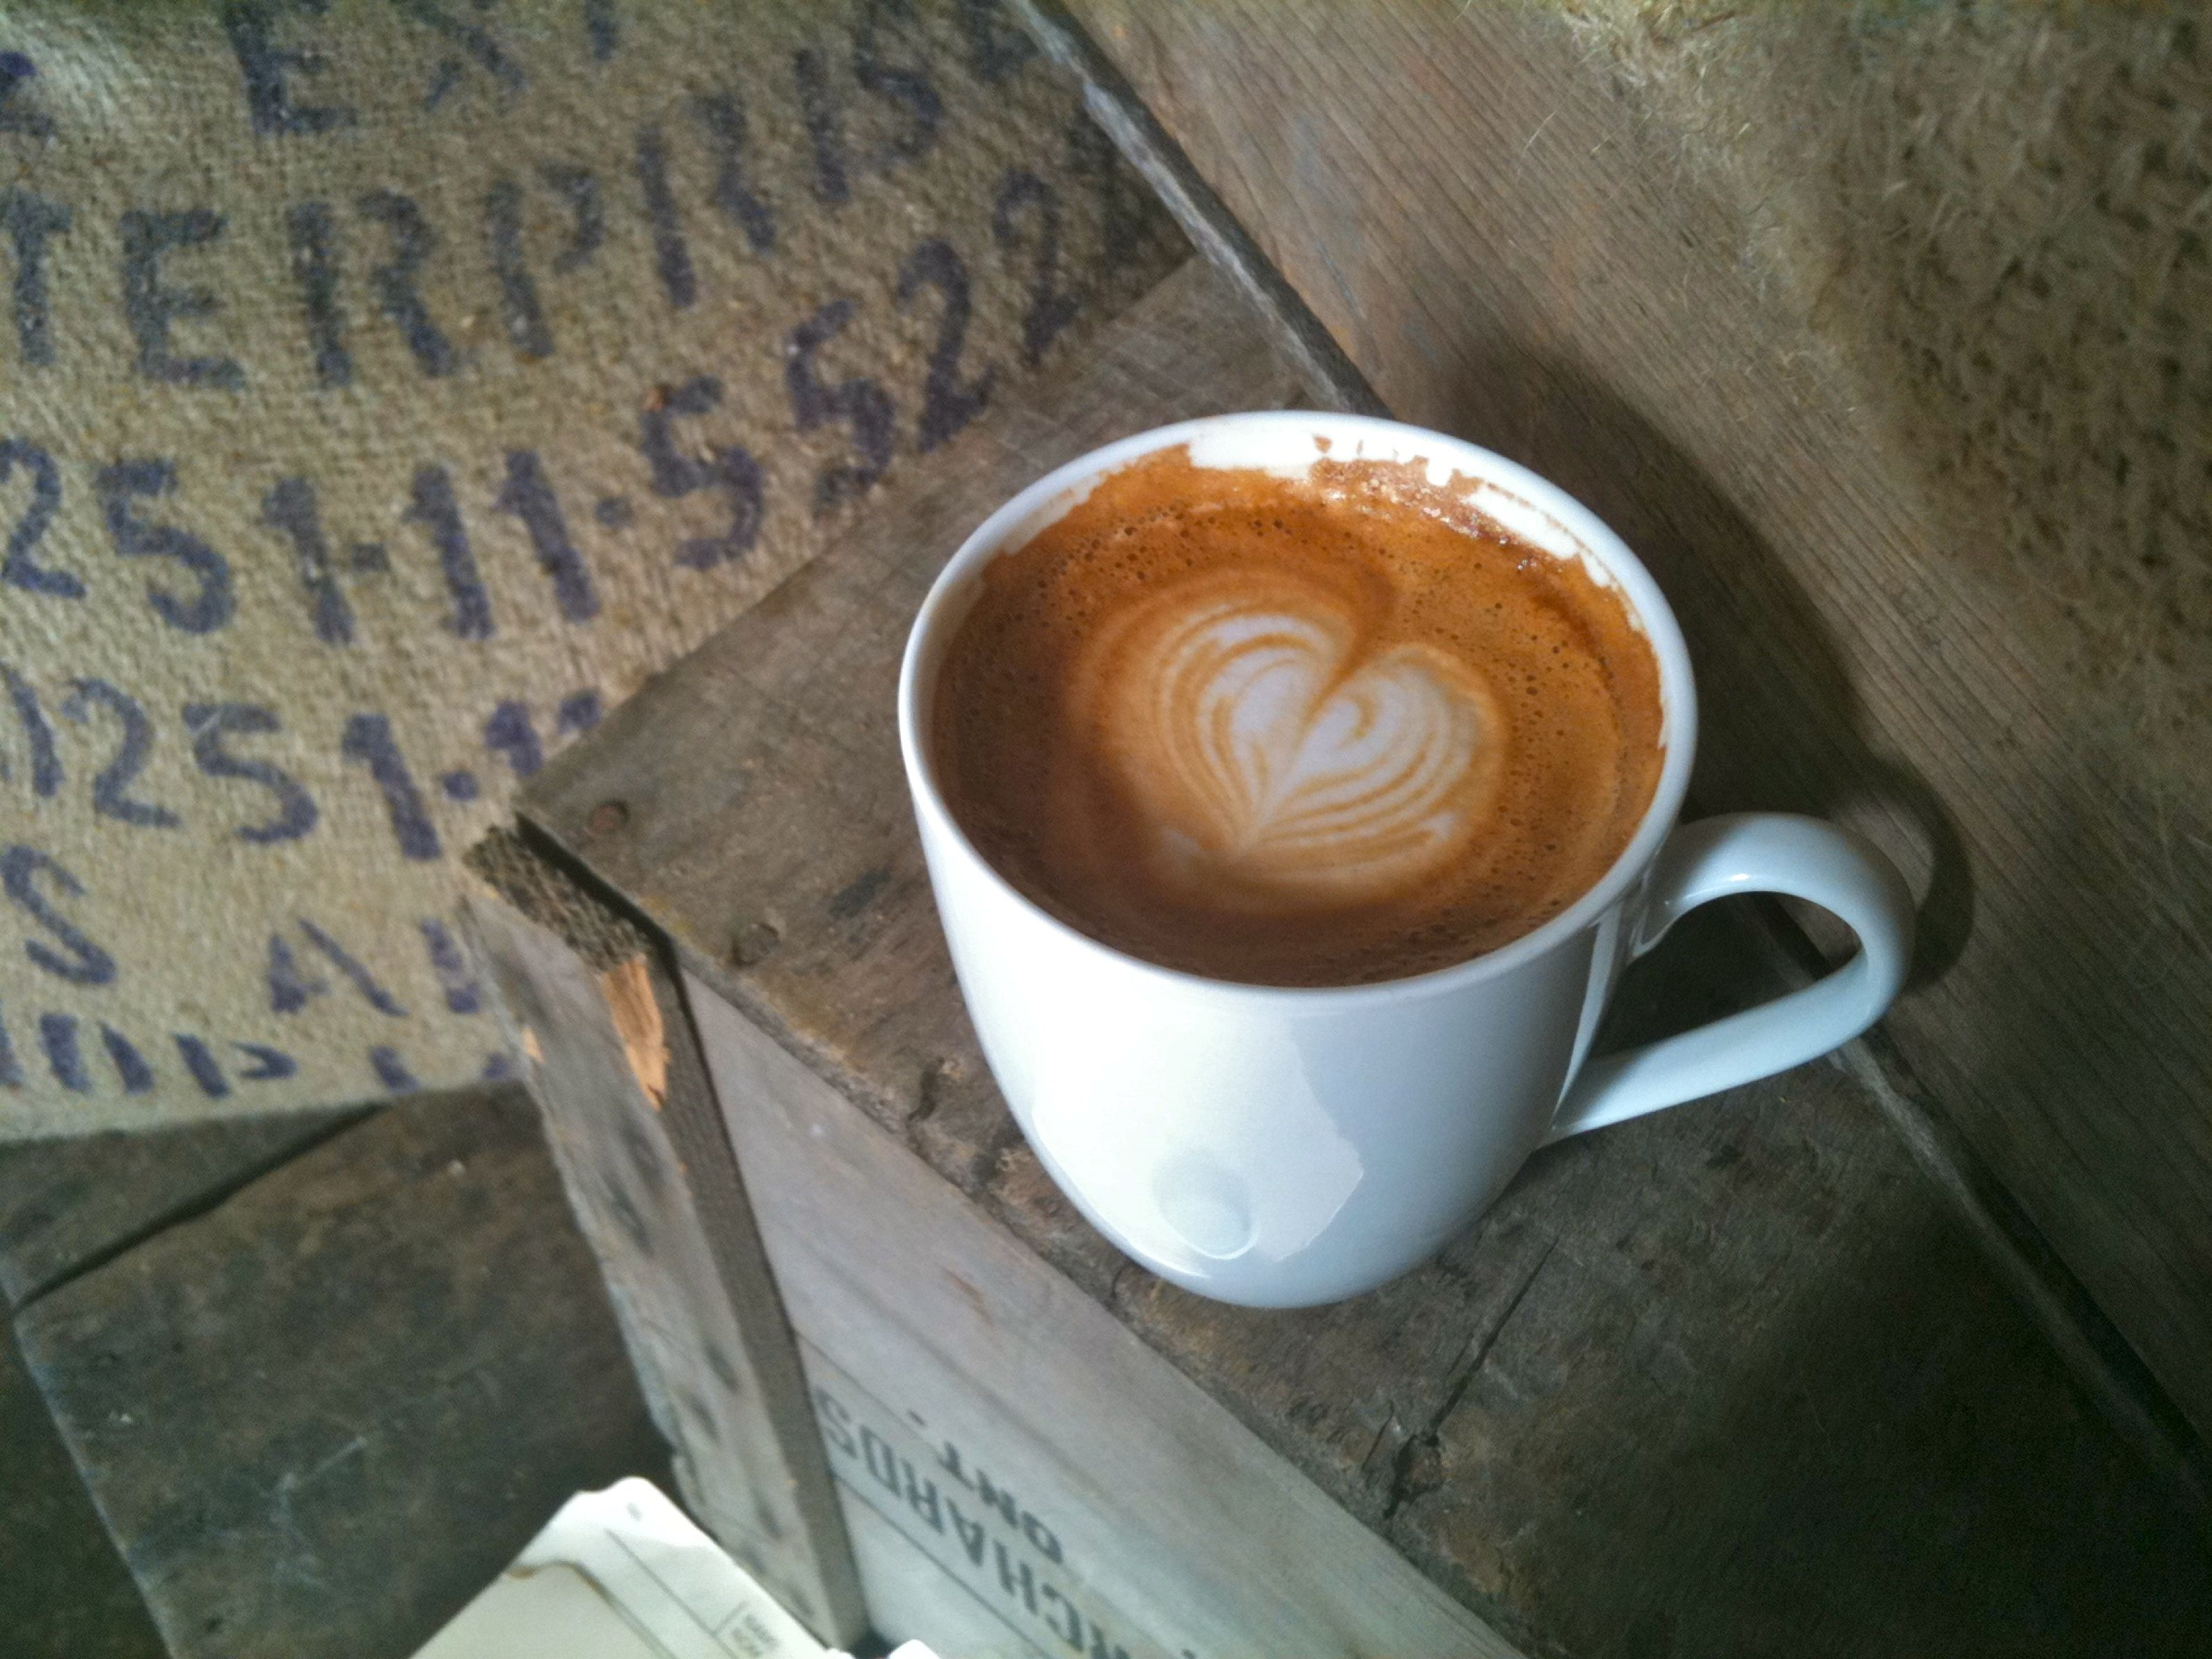 Latte At Te Aro 983 Queen Street East In Leslieville Toronto I Love Coffee Great Coffee Latte